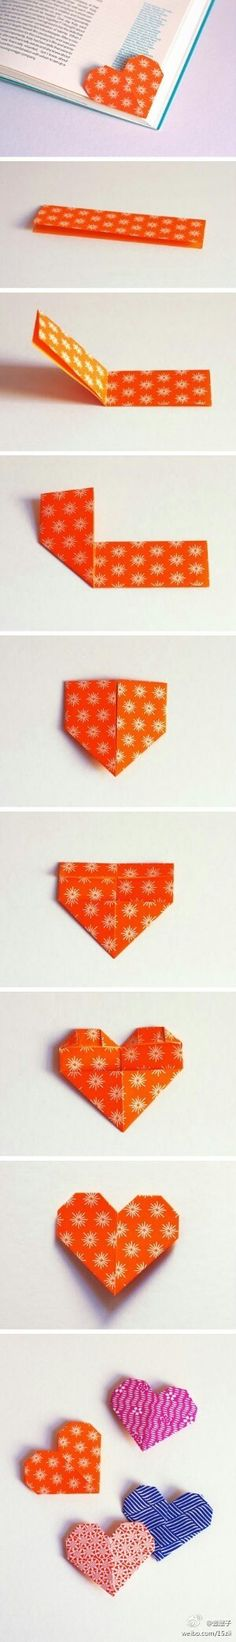 I'd love to get pretty scrapbook paper and make these to put in cards I send. So cute for book readers.